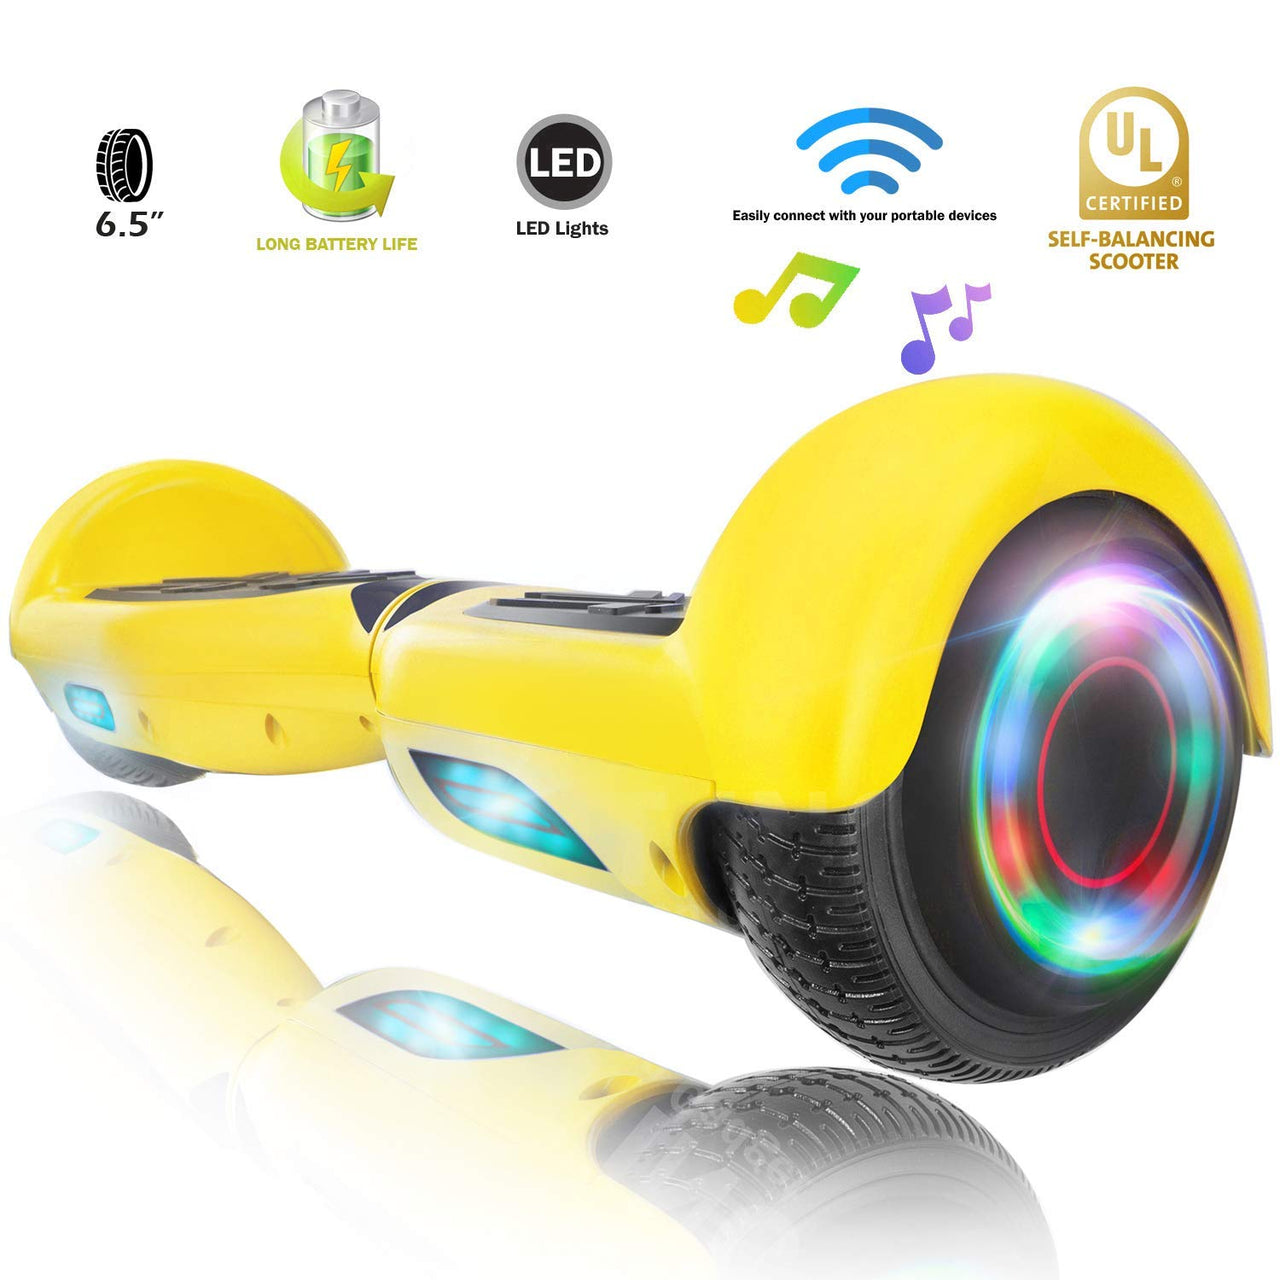 XPRIT Hoverboard w/Bluetooth Speaker, Yellow